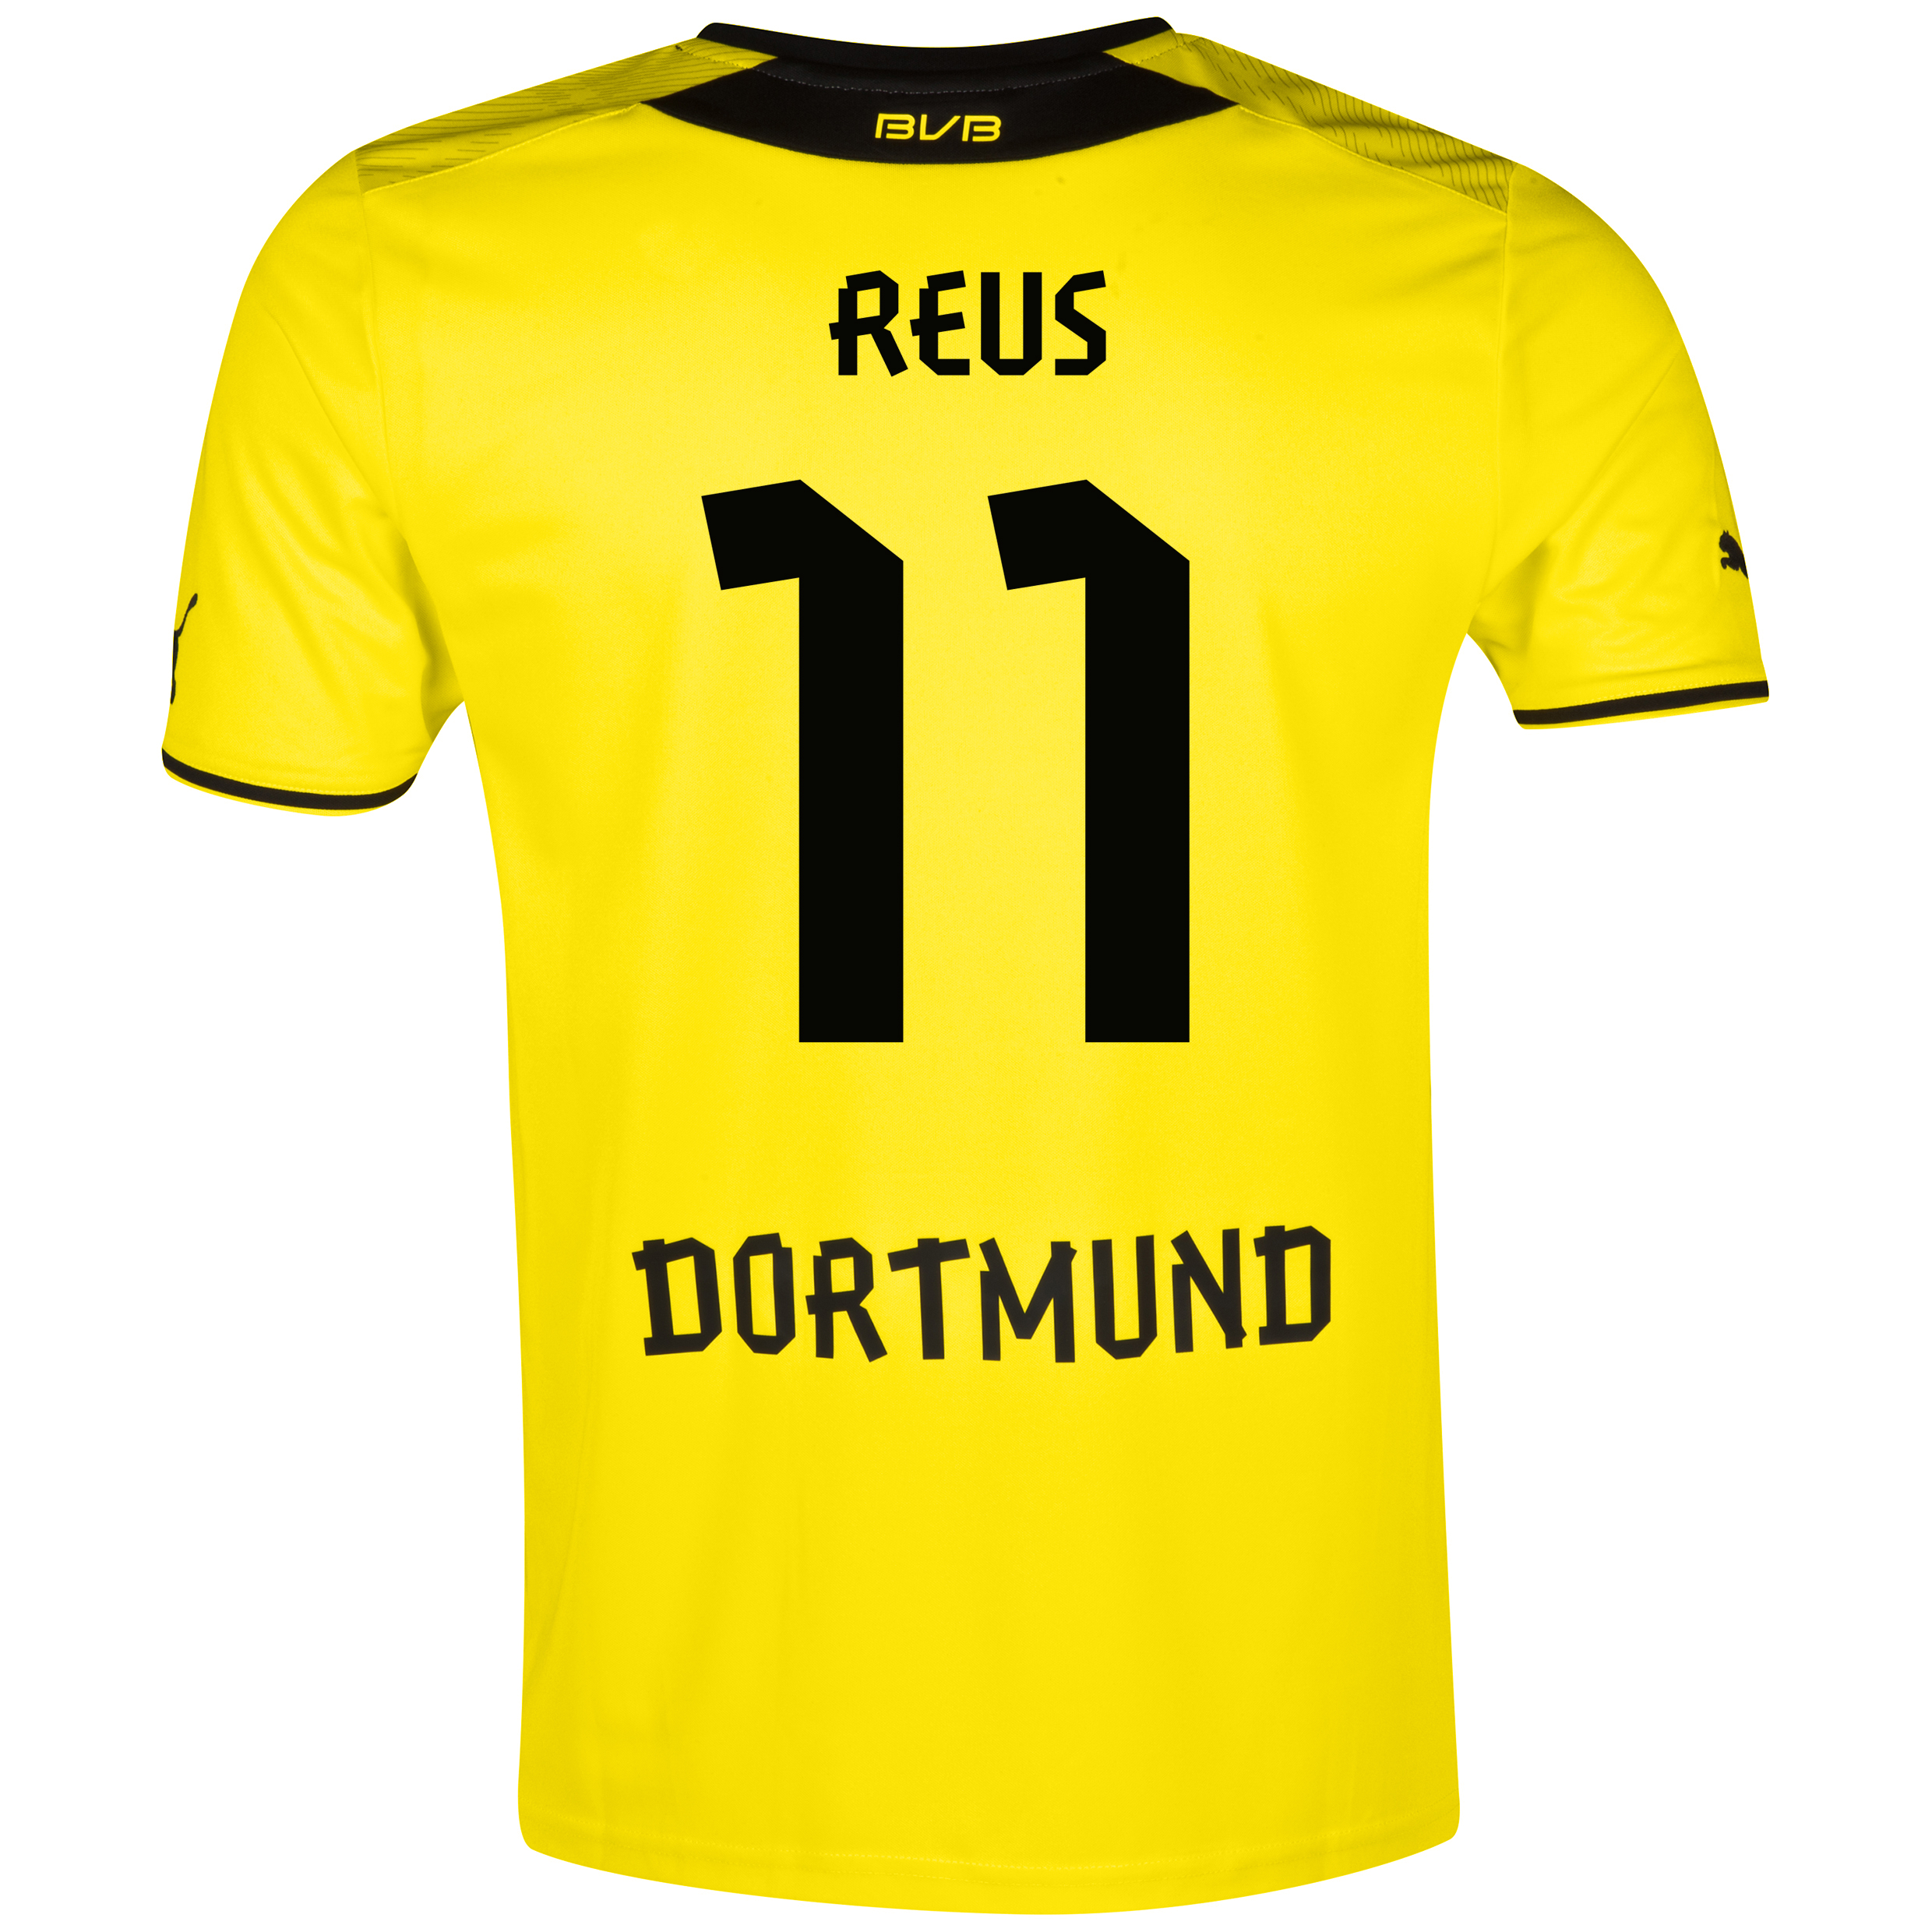 BVB Home Shirt 2013/14 with Reus 11 printing